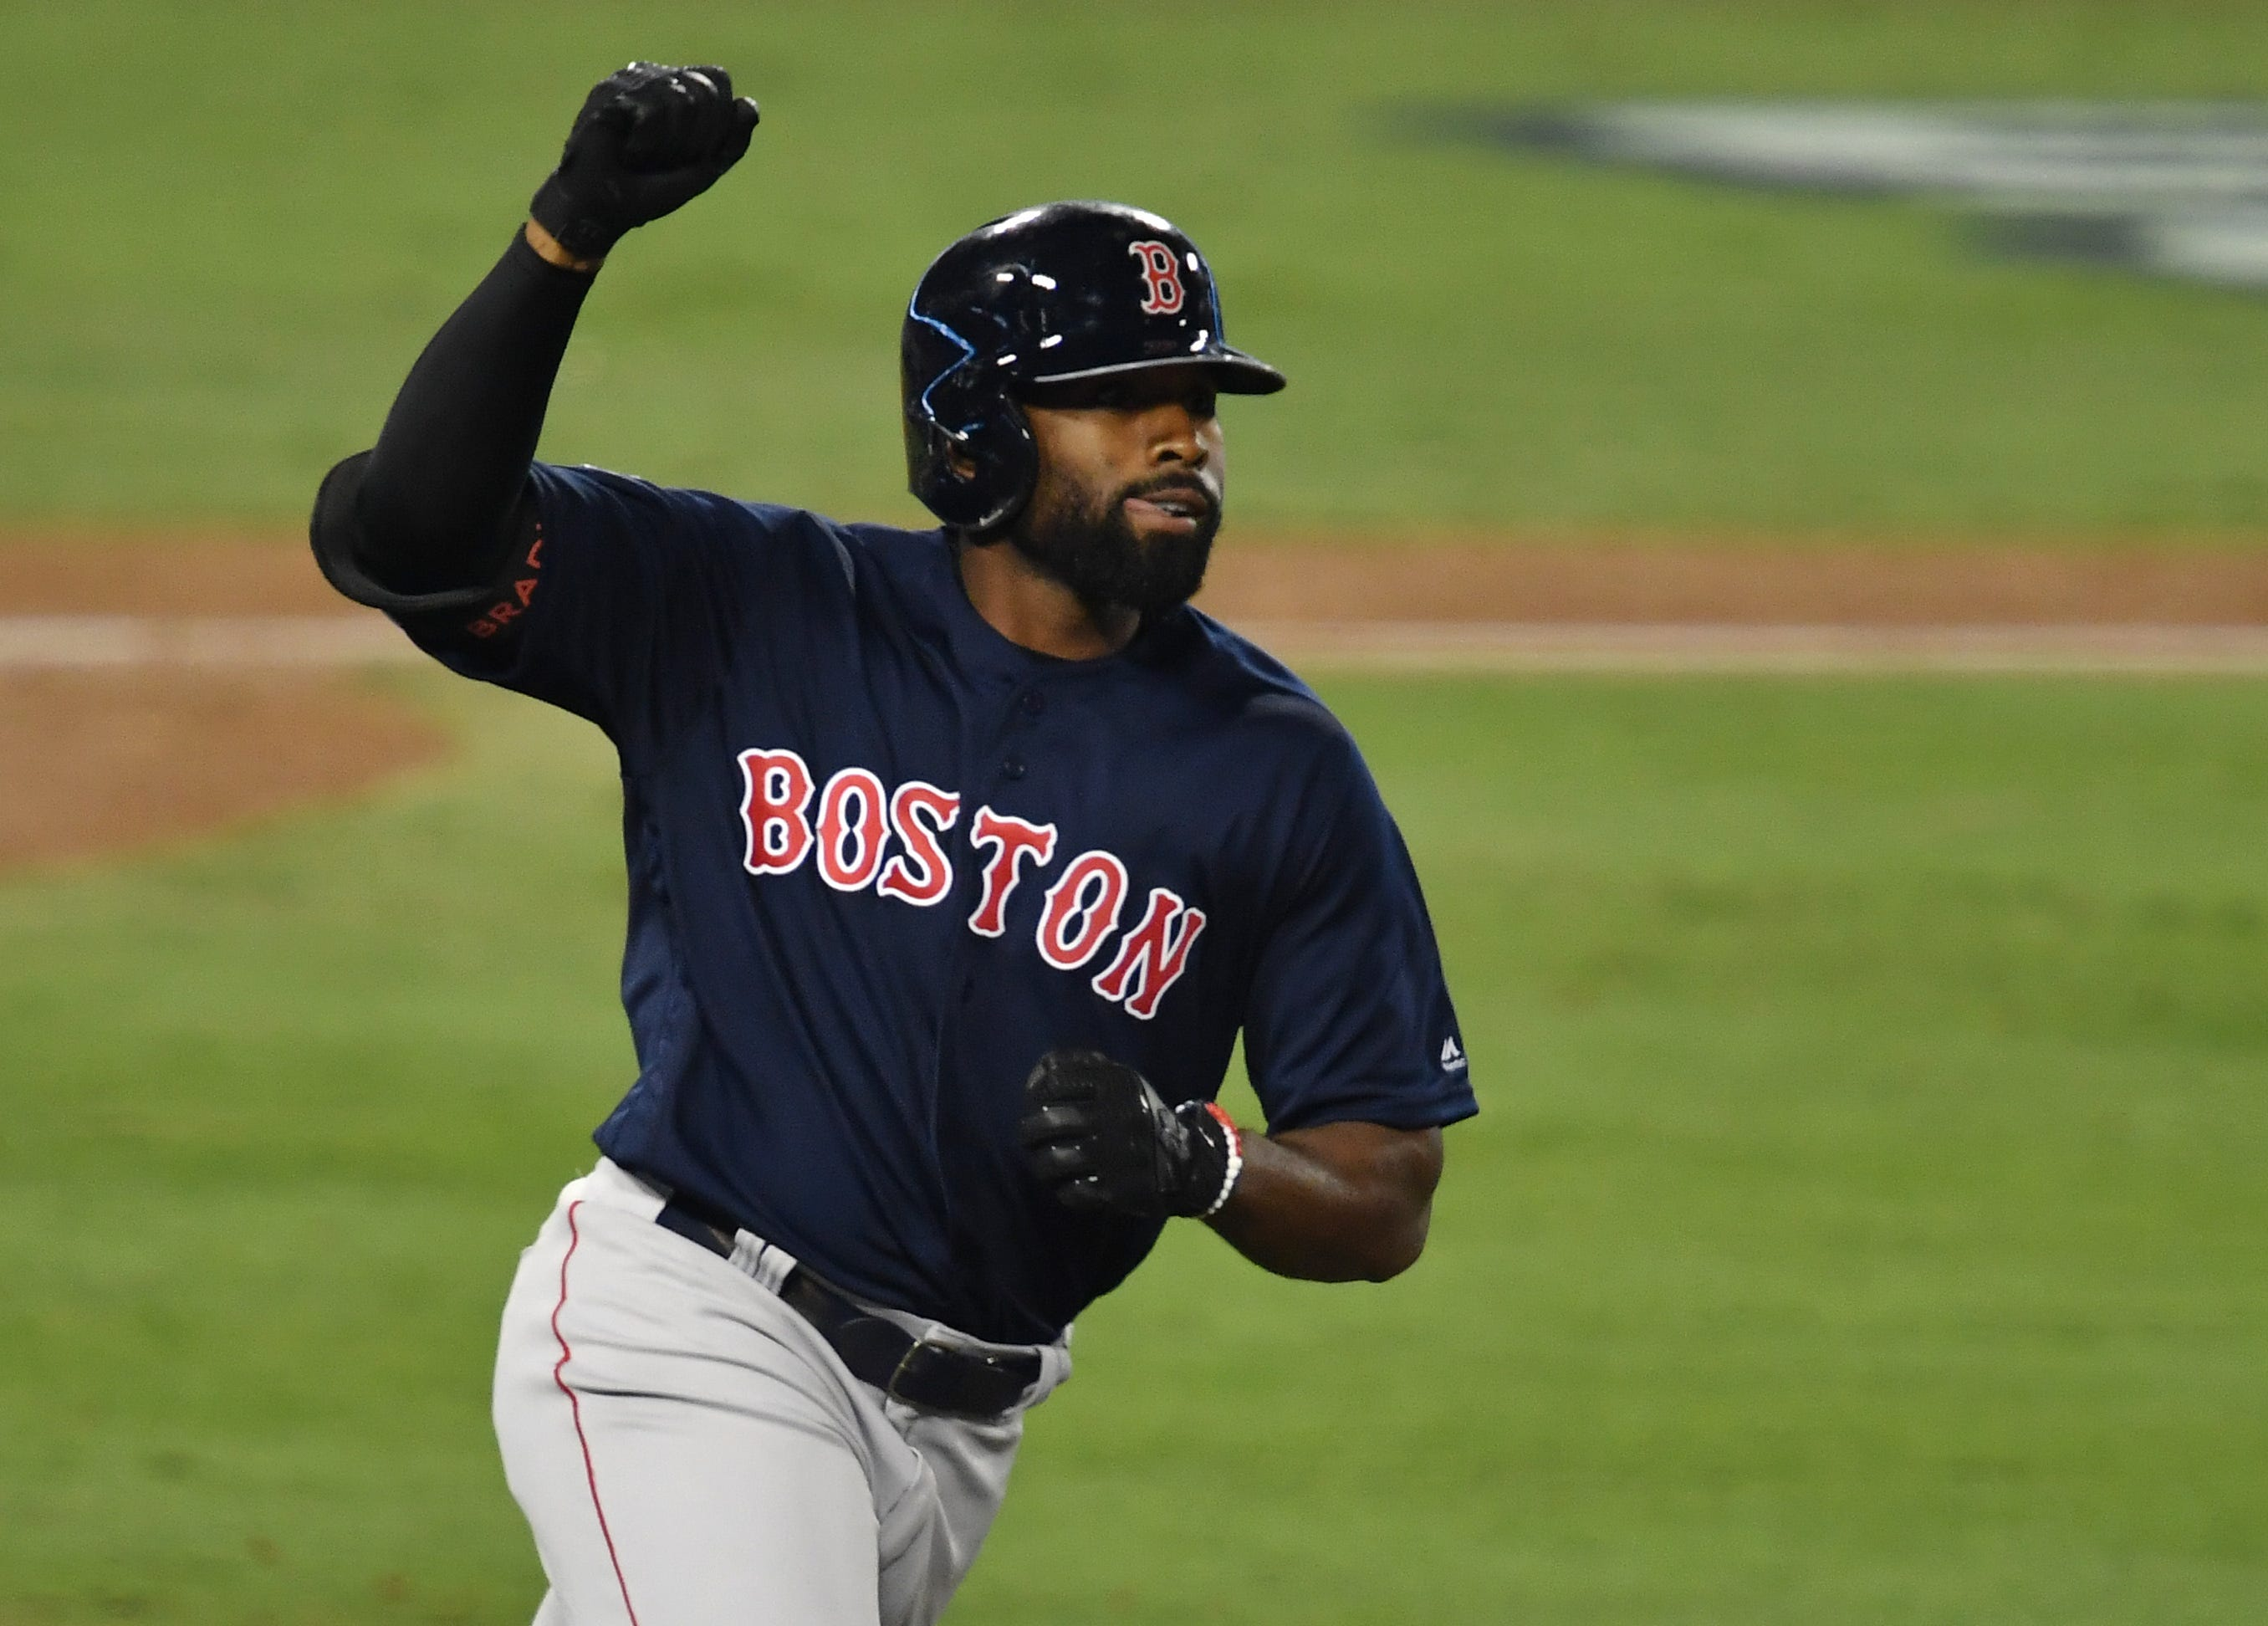 Red Sox CF: I wouldn't go to White House even 'if Hillary (Clinton) was in office'